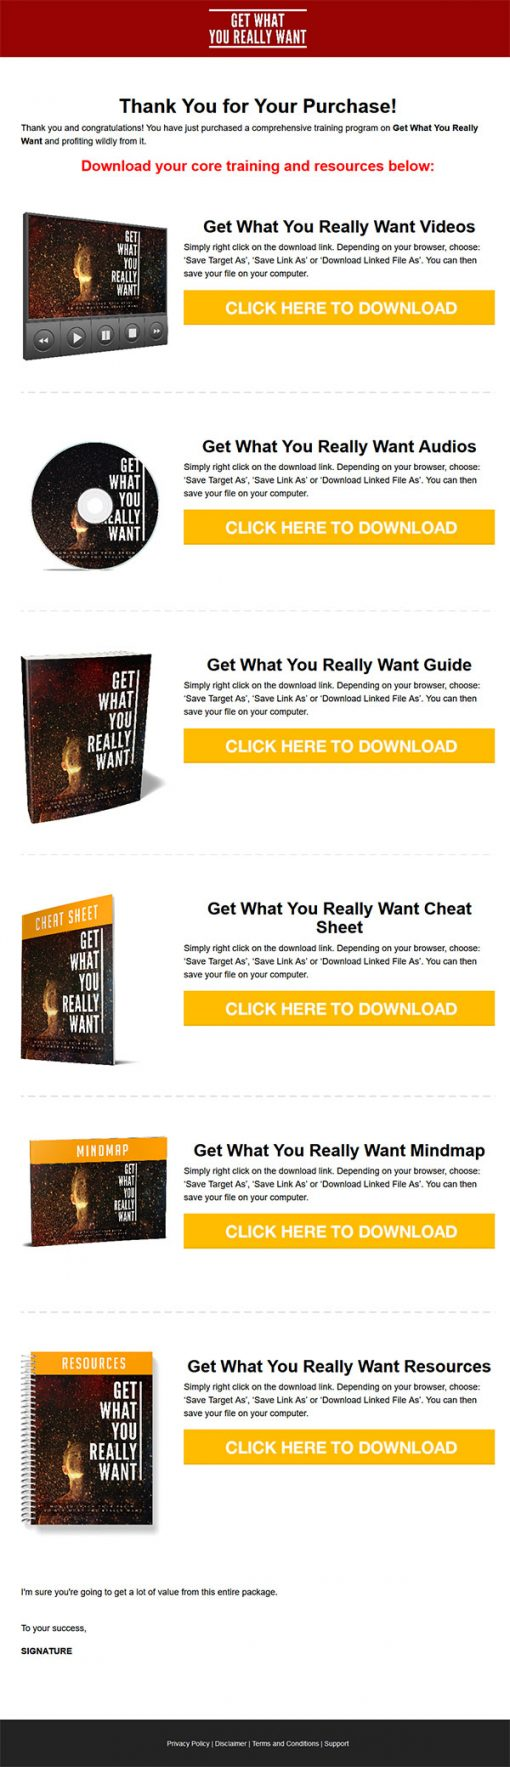 Get What You Really Want Ebook and Videos MRR